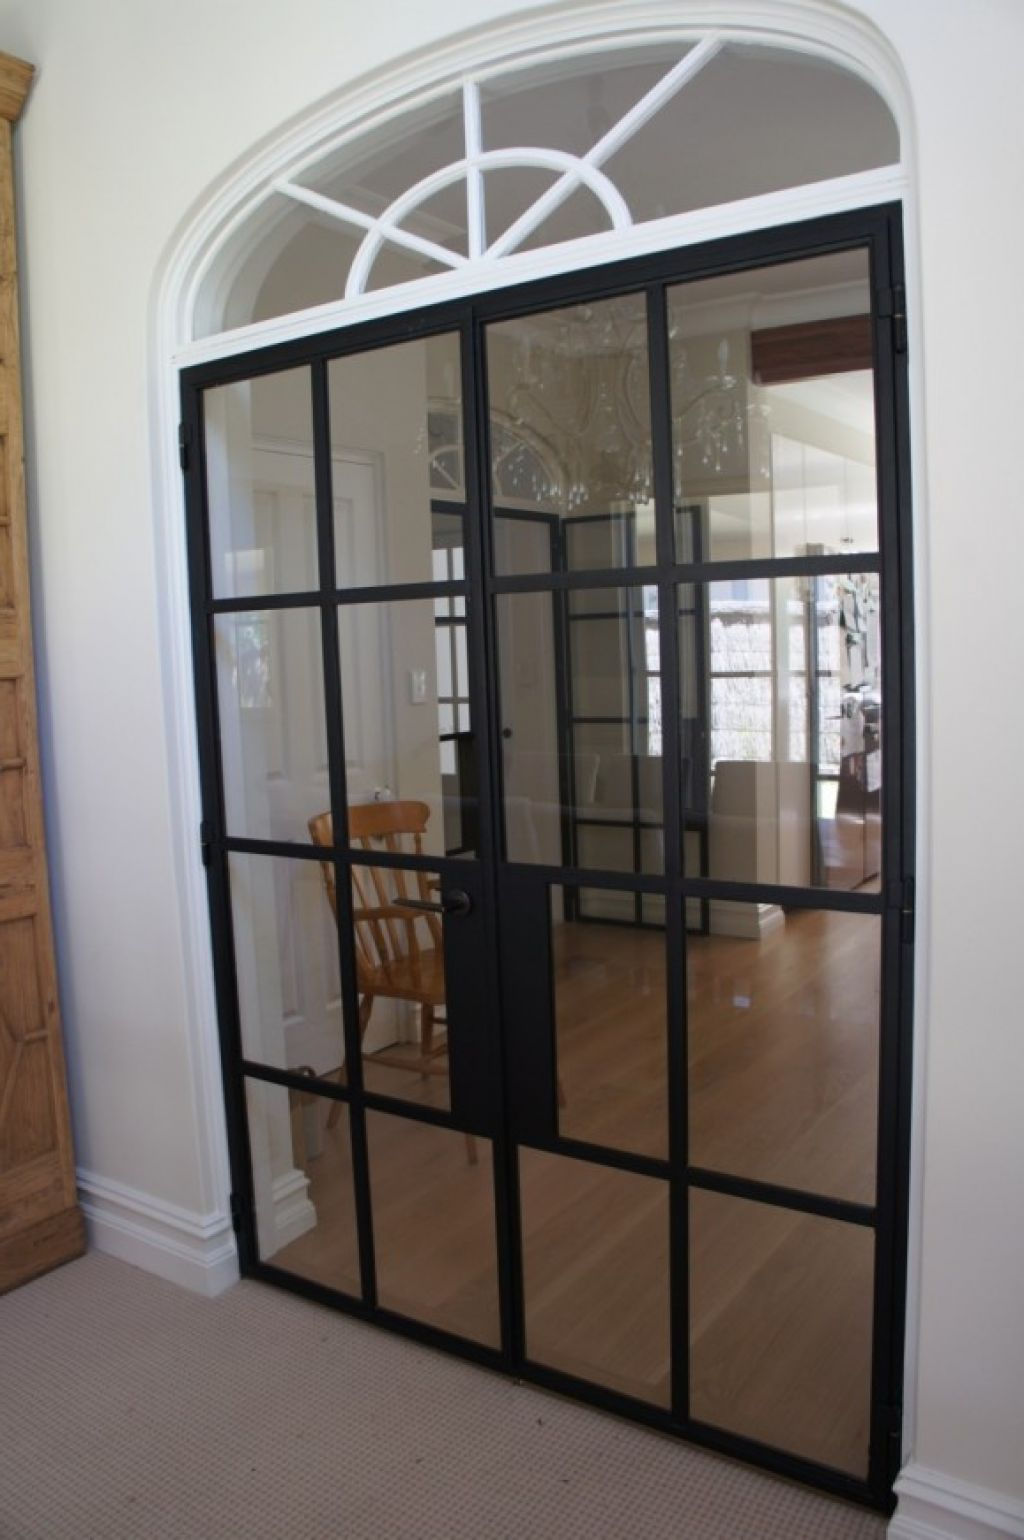 Vintage styled modern design iron french double door with arched modern french door with solid steel thin frame for easily replacement and clear glasses is used for the door window for brighter room rubansaba